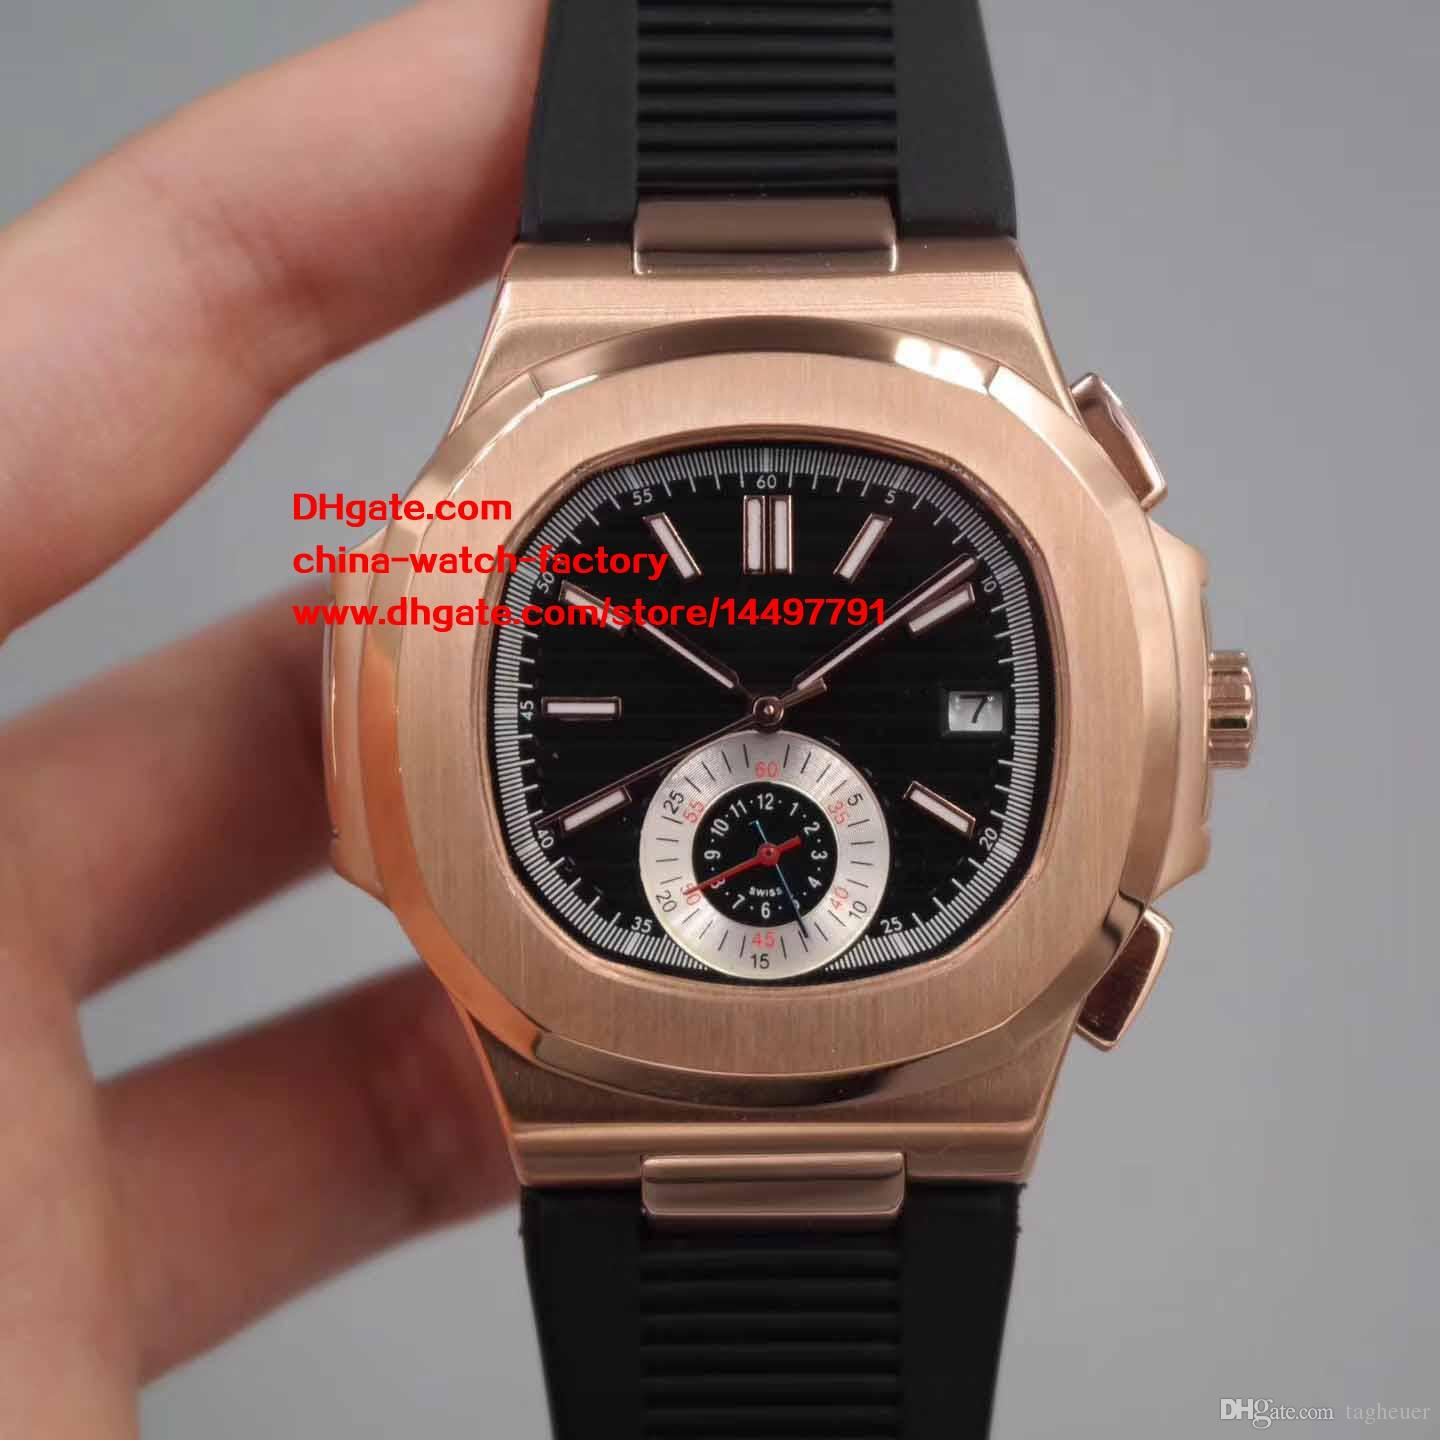 l oyo excellent ap audemars piguet watches quality jewelry